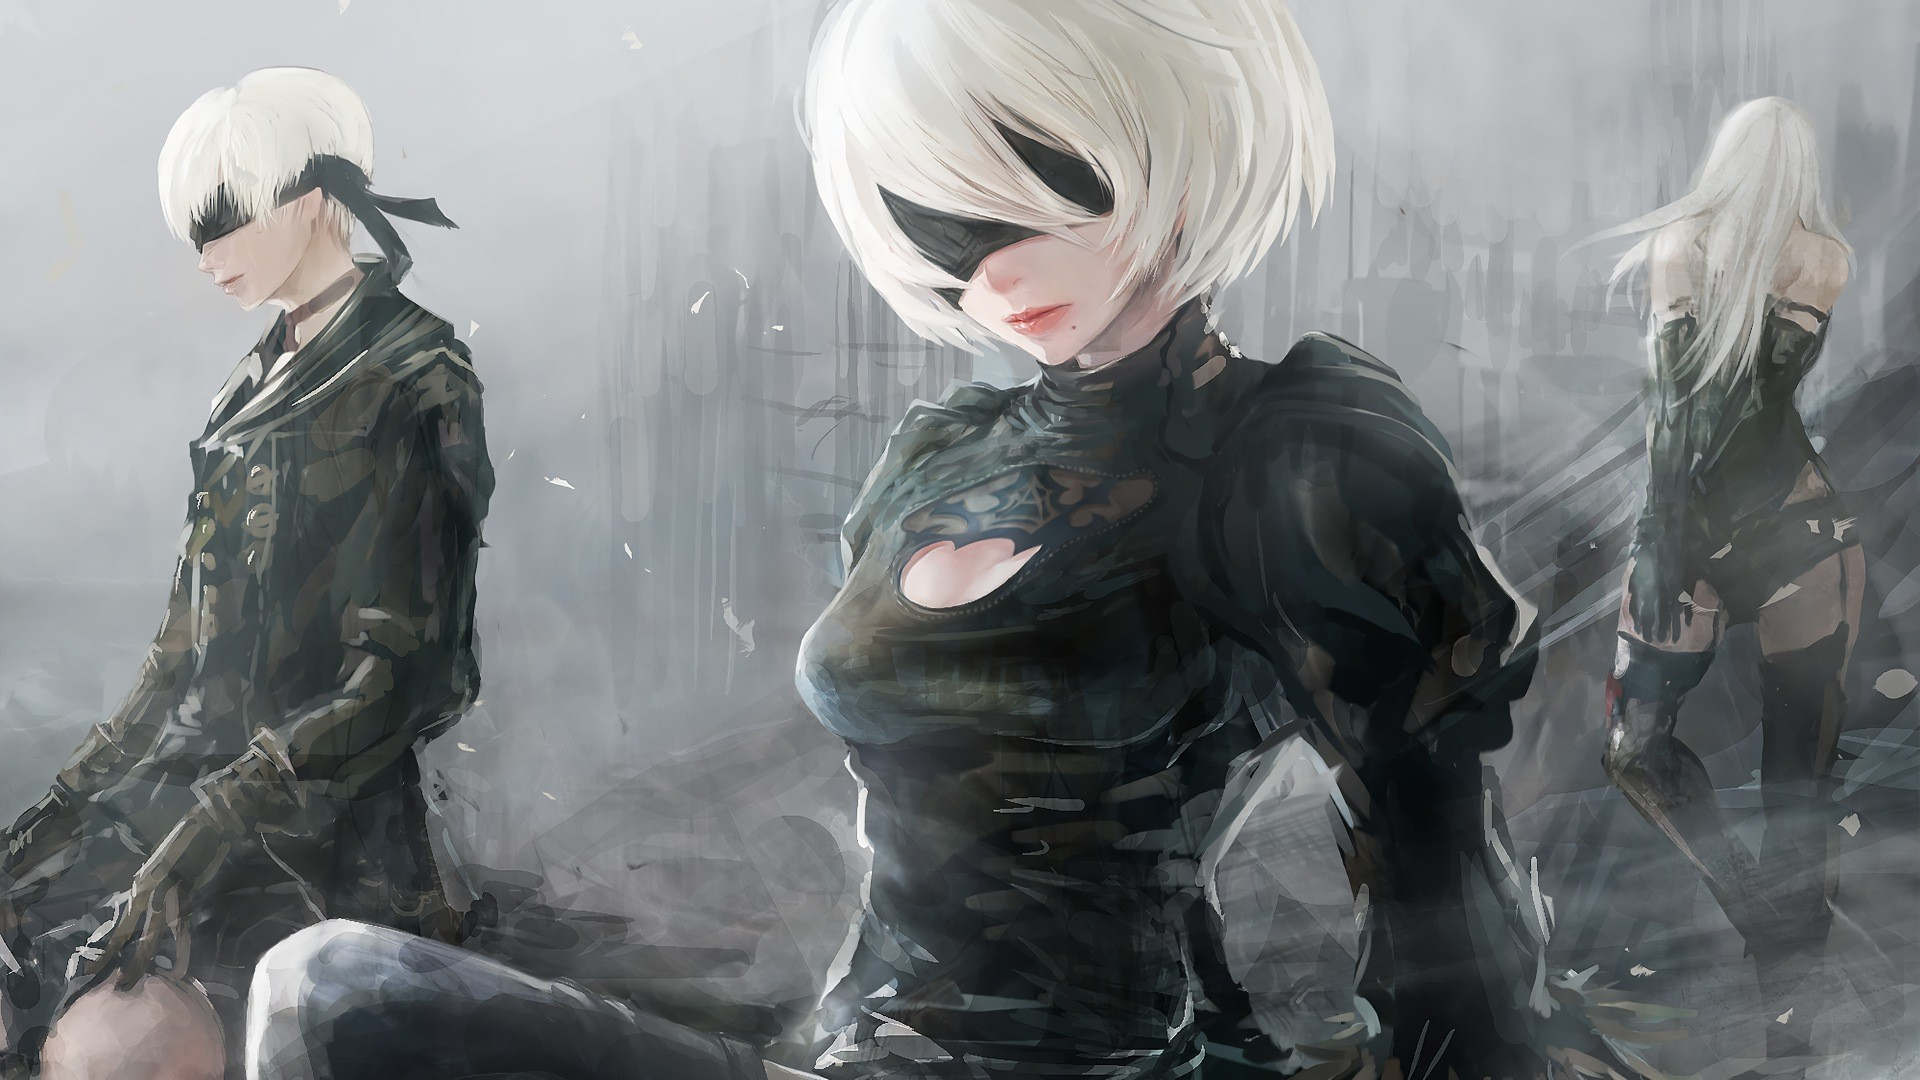 Nier Automata Wallpaper ·① Download Free Cool High